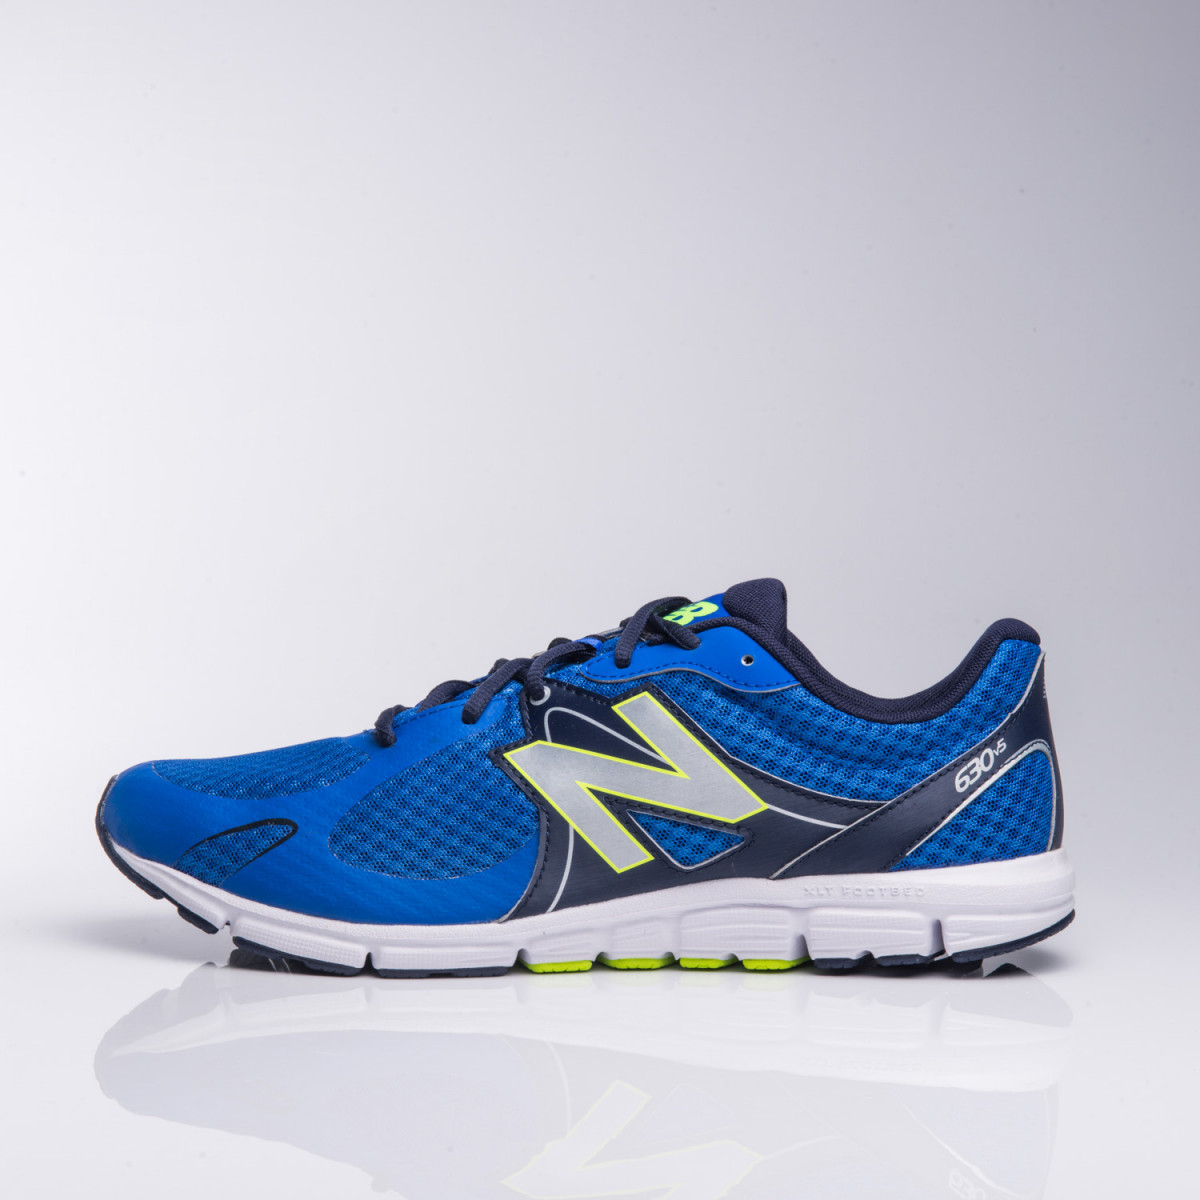 Zapatillas New Balance M630Lp5